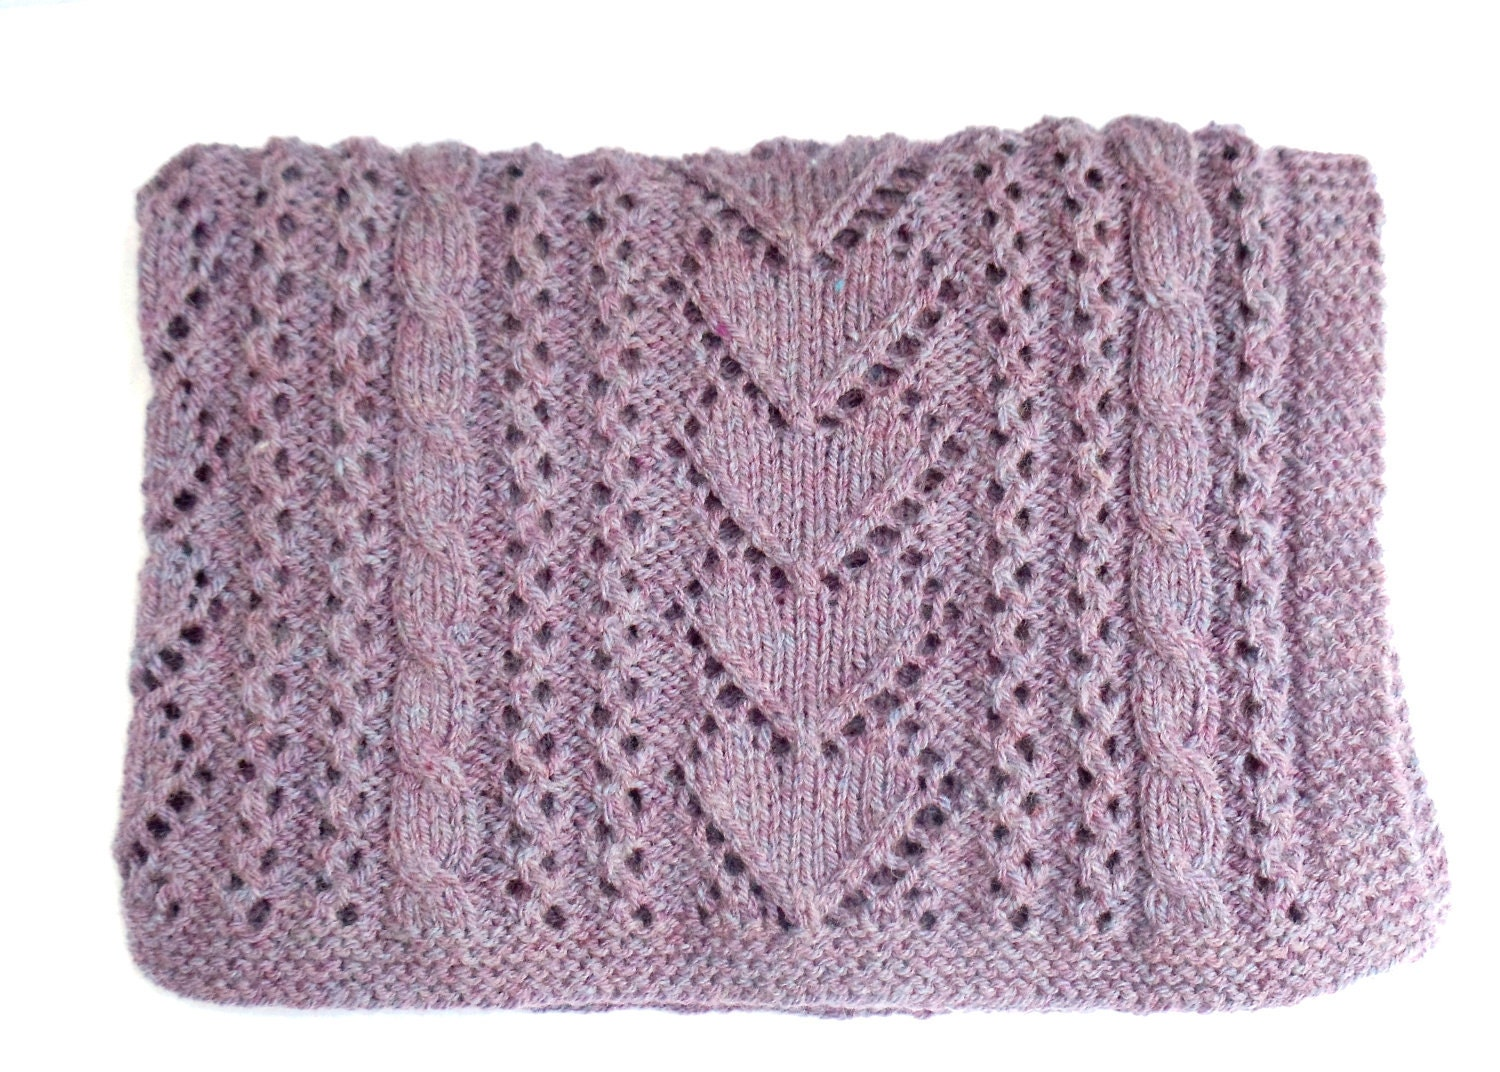 Aran Knitting Patterns For Babies : Aran Knitting Pattern Baby Blanket Instant by TheWoollyKnitter